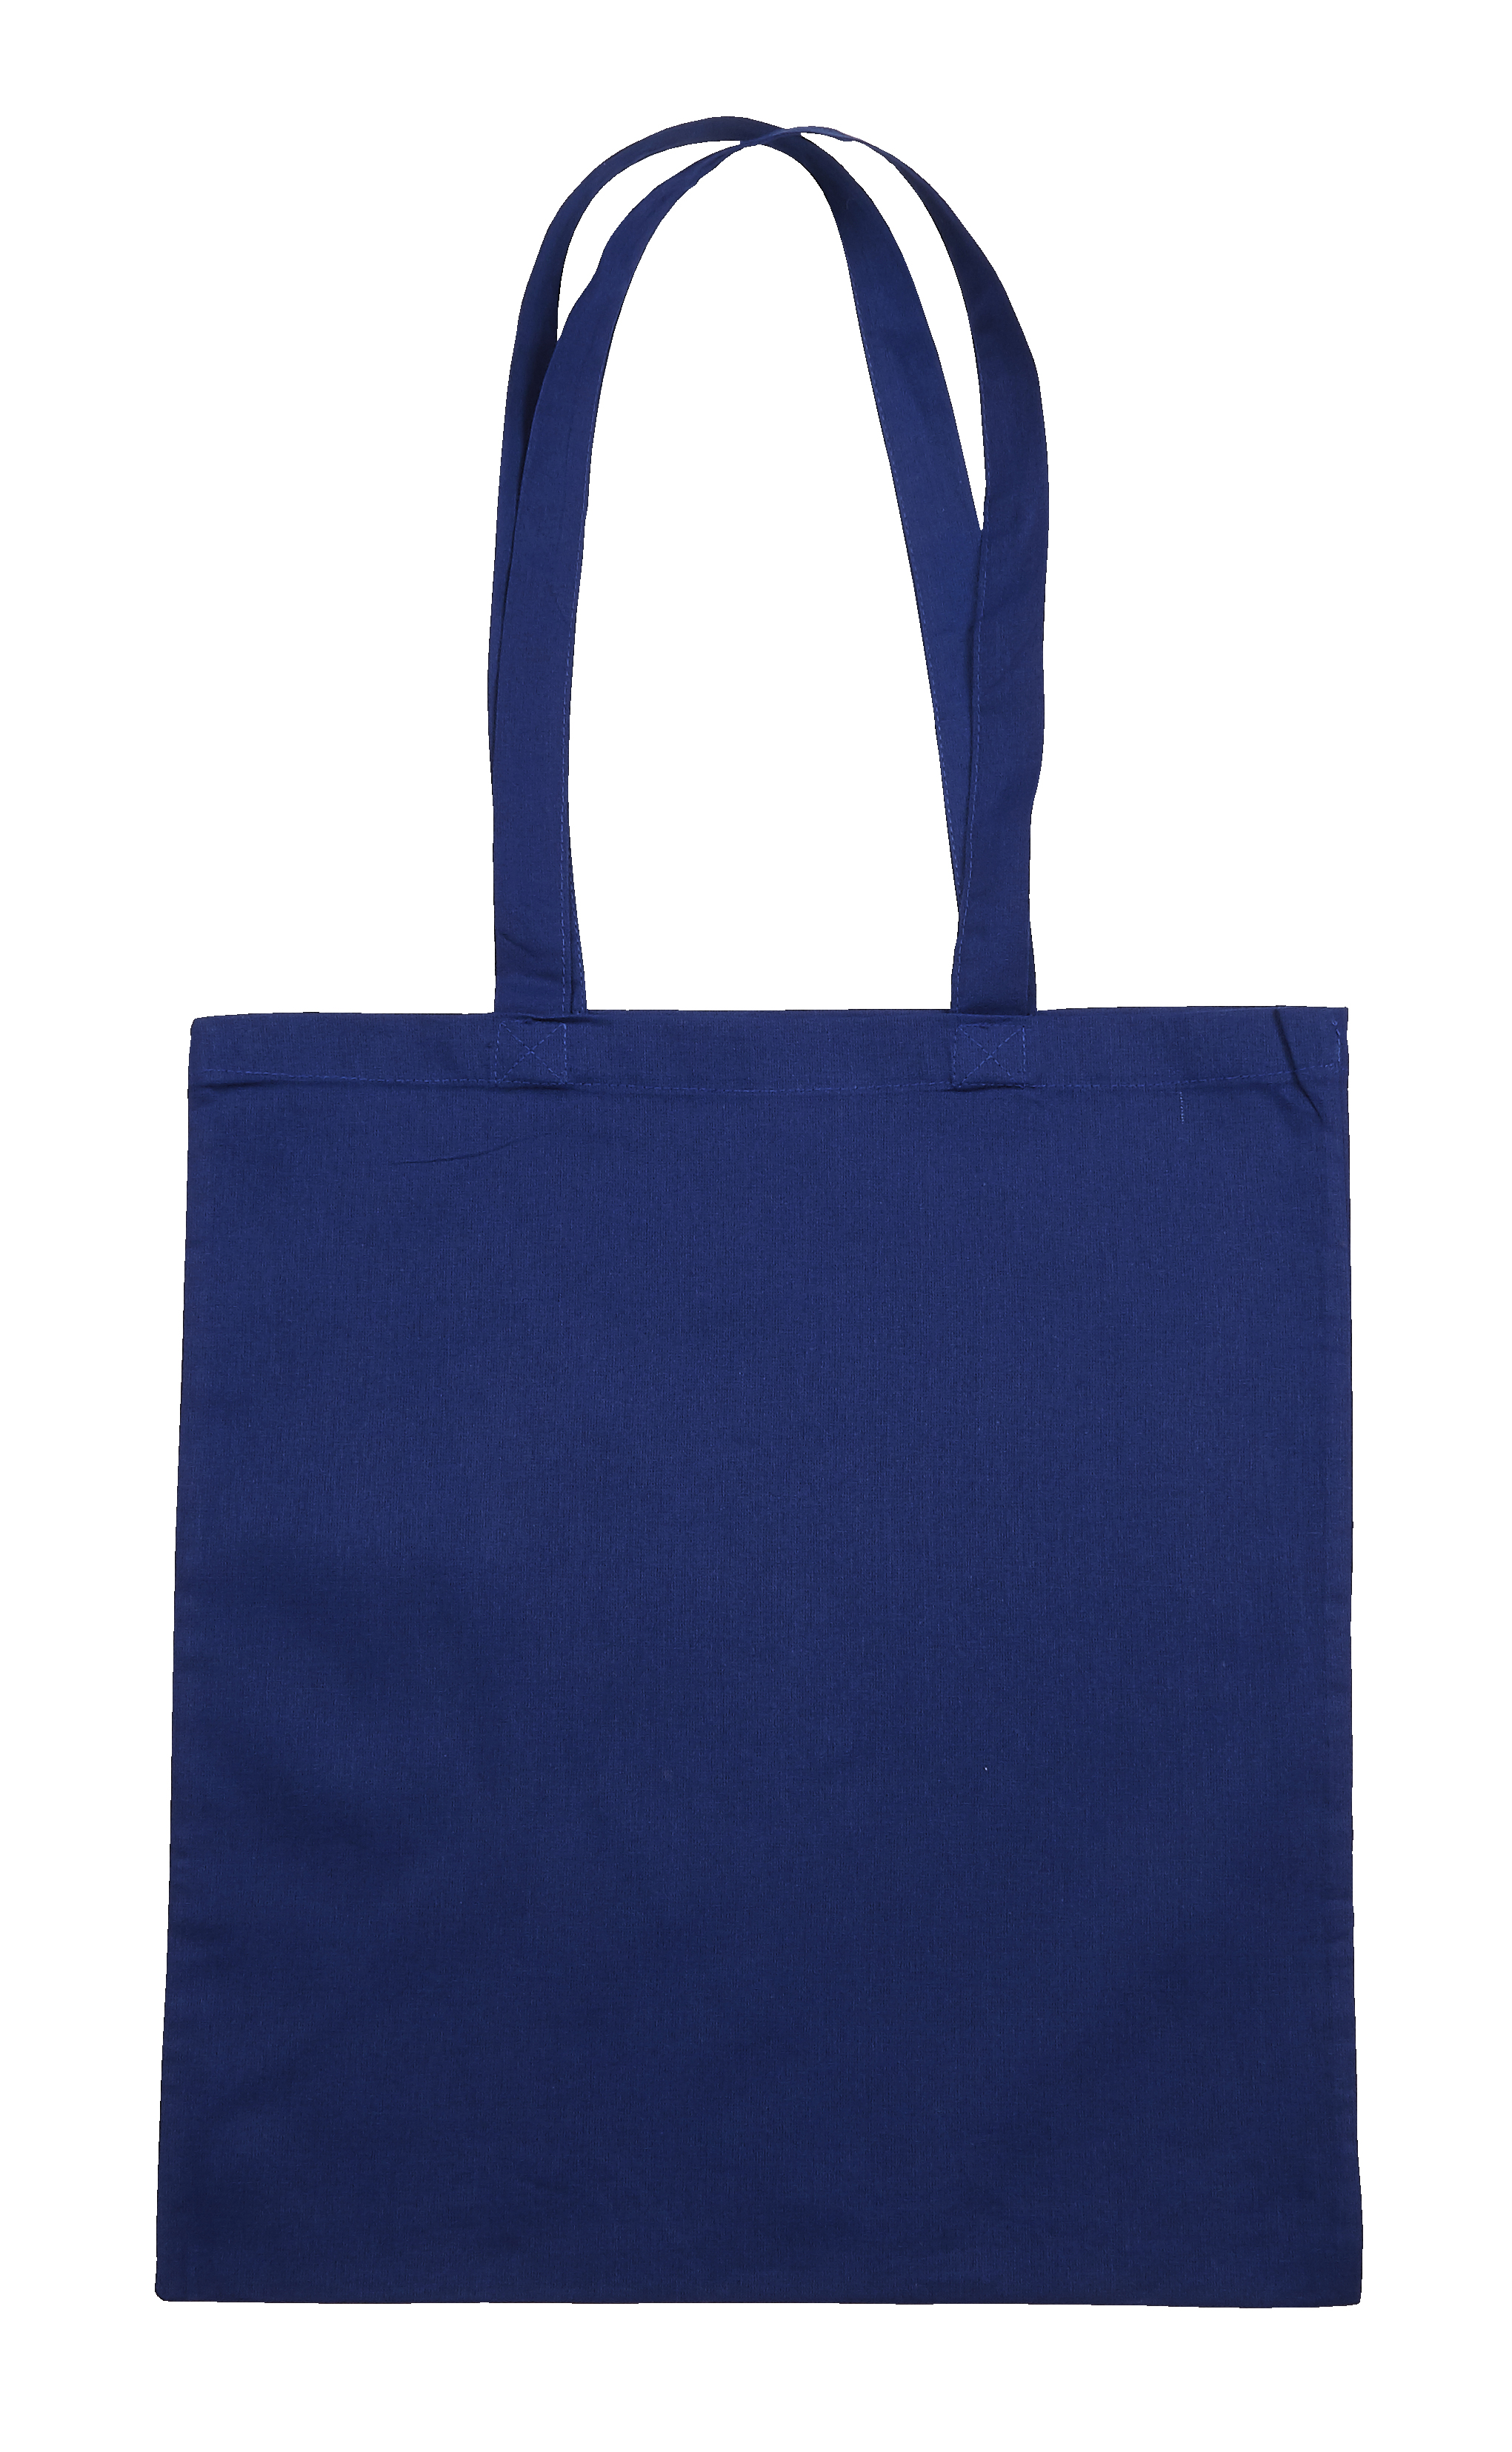 Blue Jute Canvas Cotton Shopper Bag